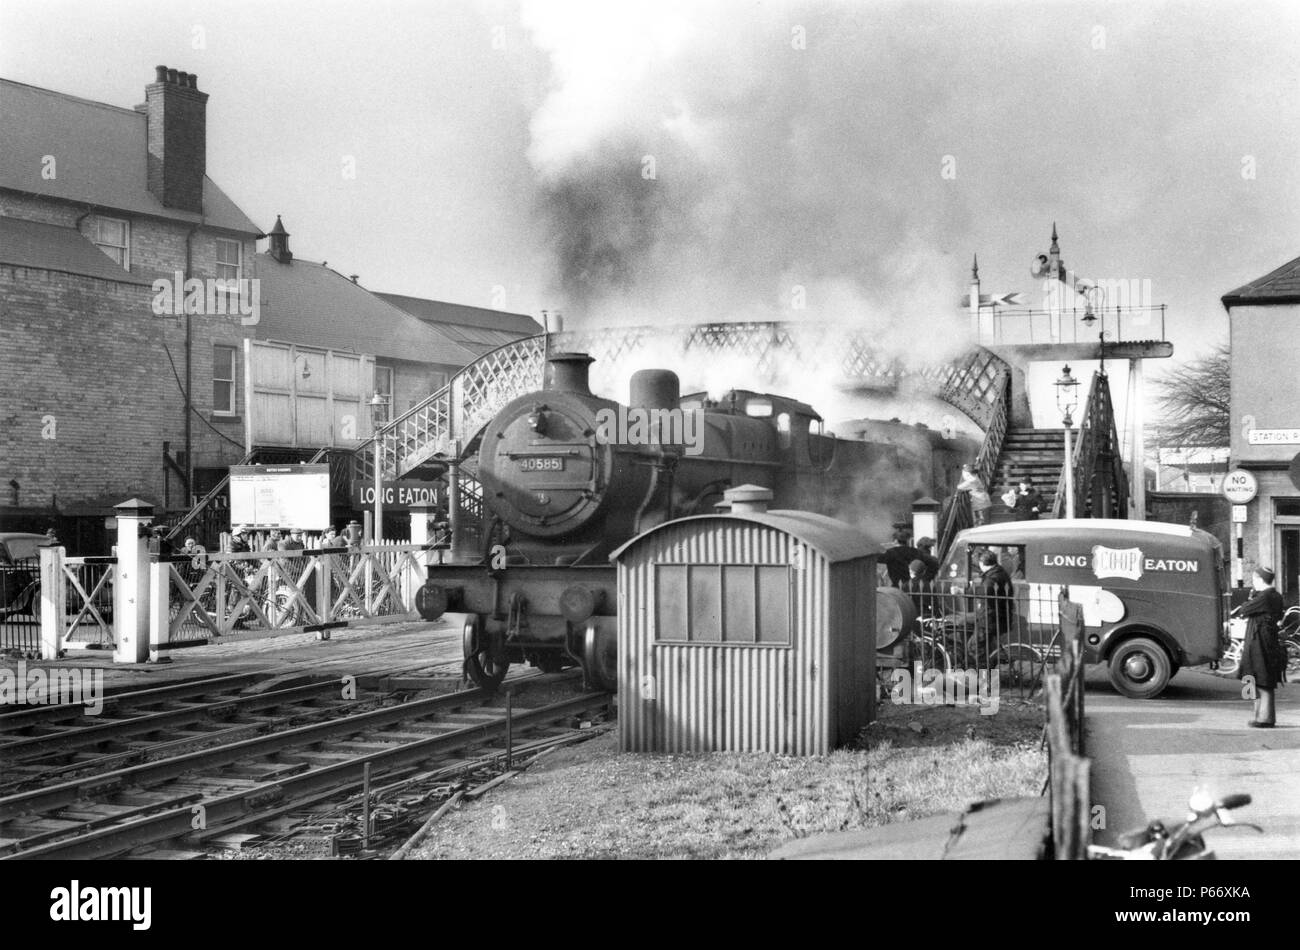 Bustle, excitement and movement are revealed in this picture of Long Eaton station. The departing train is headed by a former Midland Railway Simple 4 - Stock Image